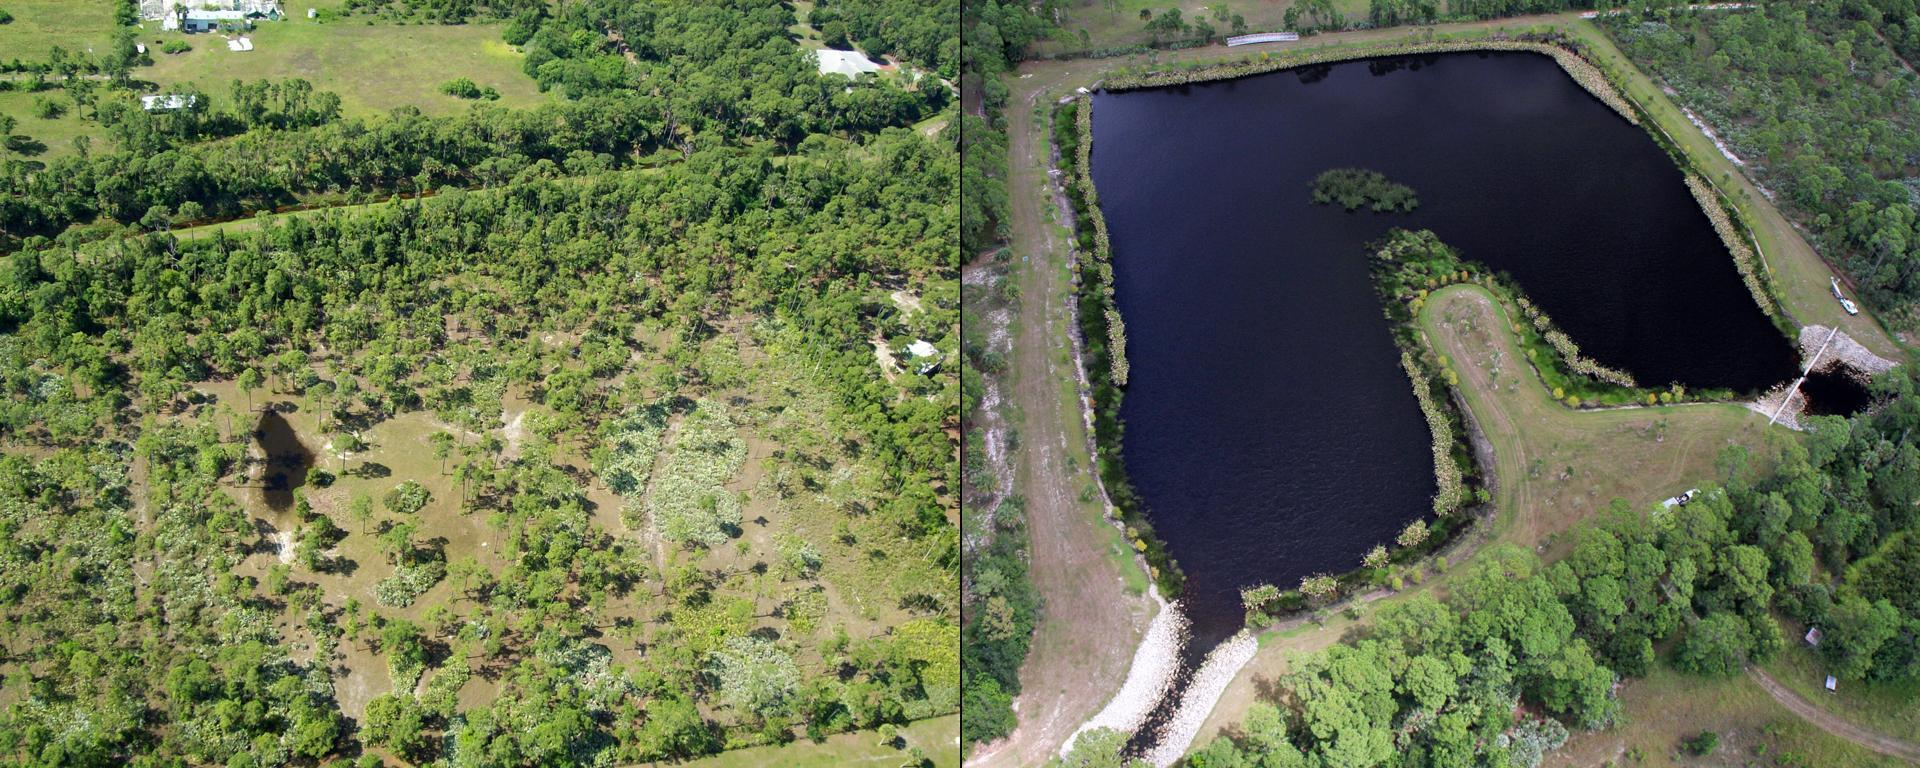 An image of the Danforth Creek project before and after